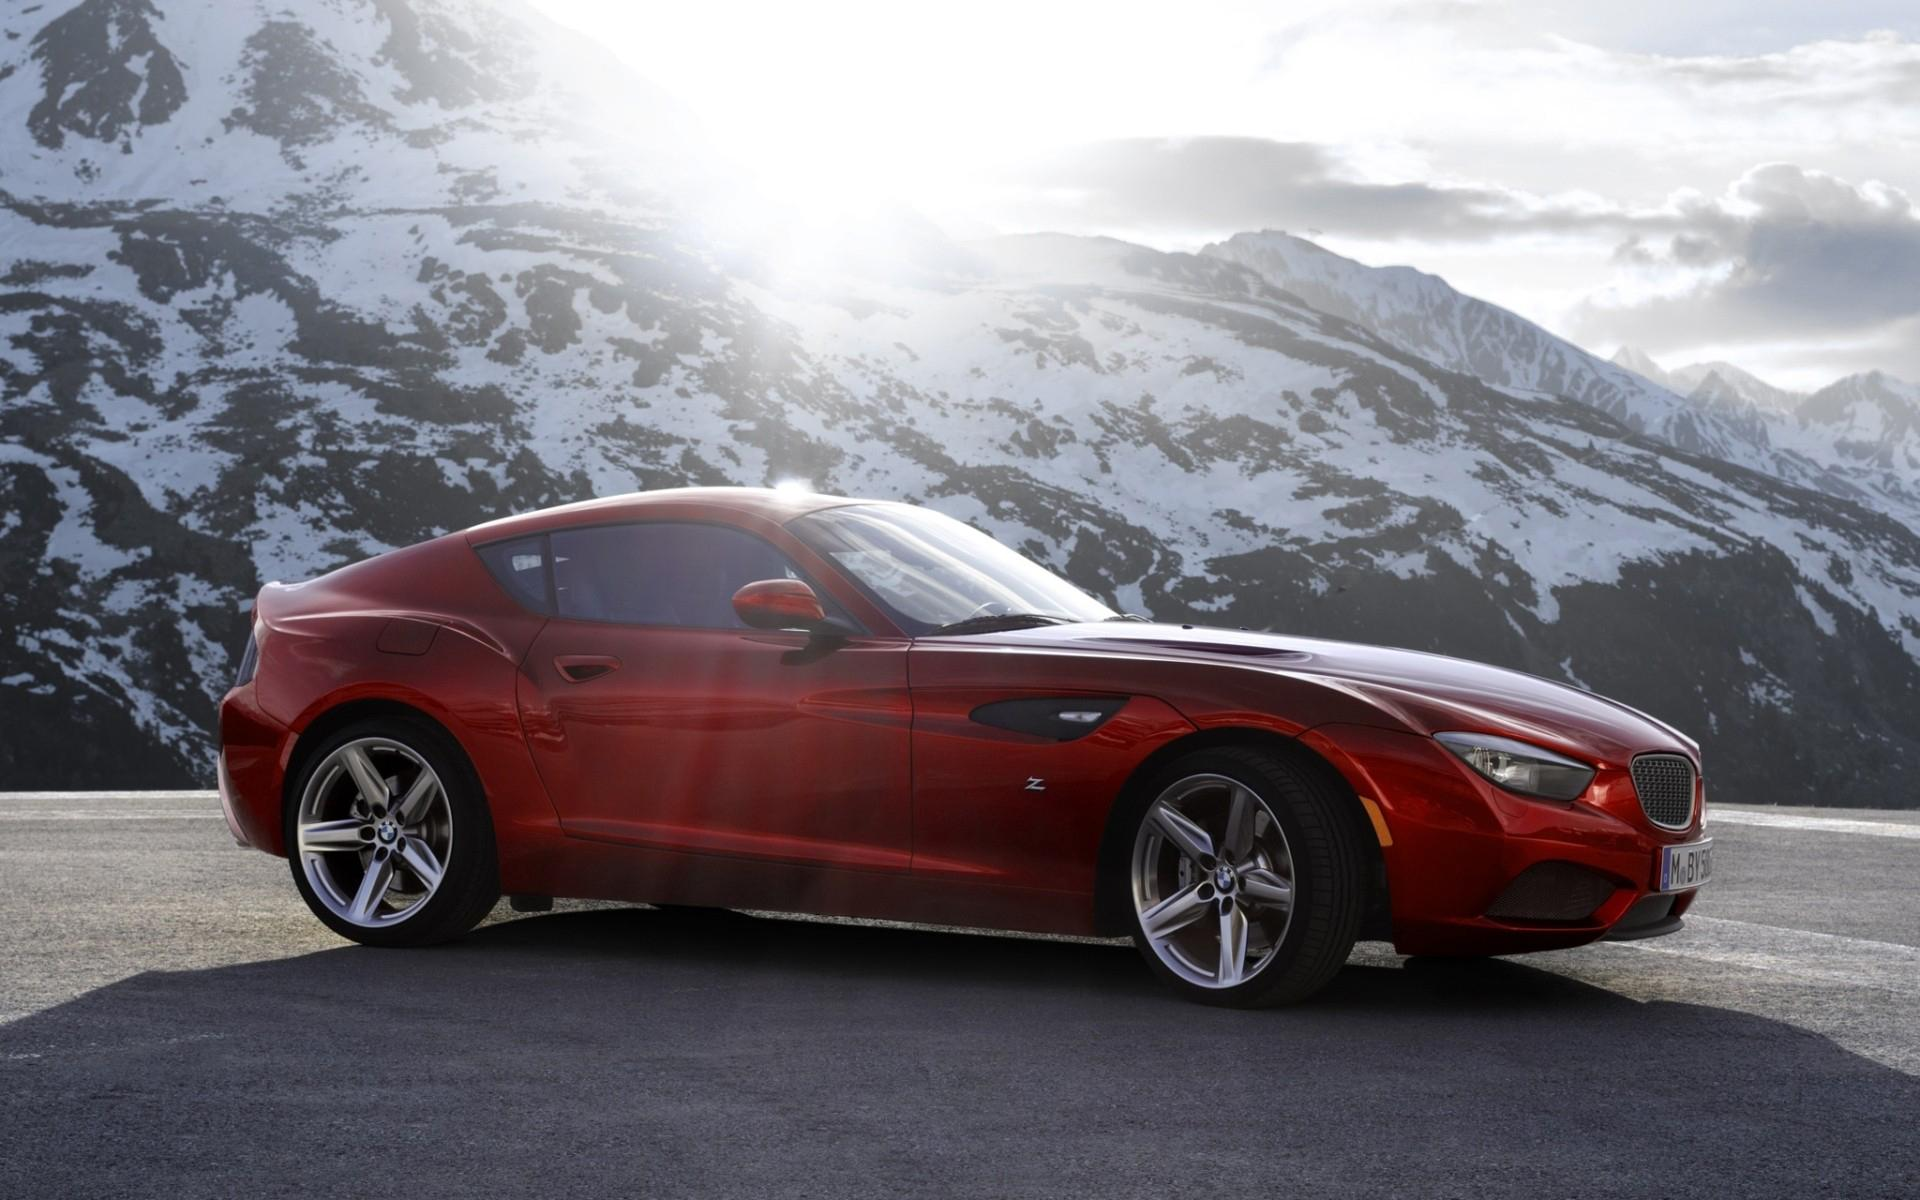 1920x1200 - BMW Zagato Coupe Wallpapers 24